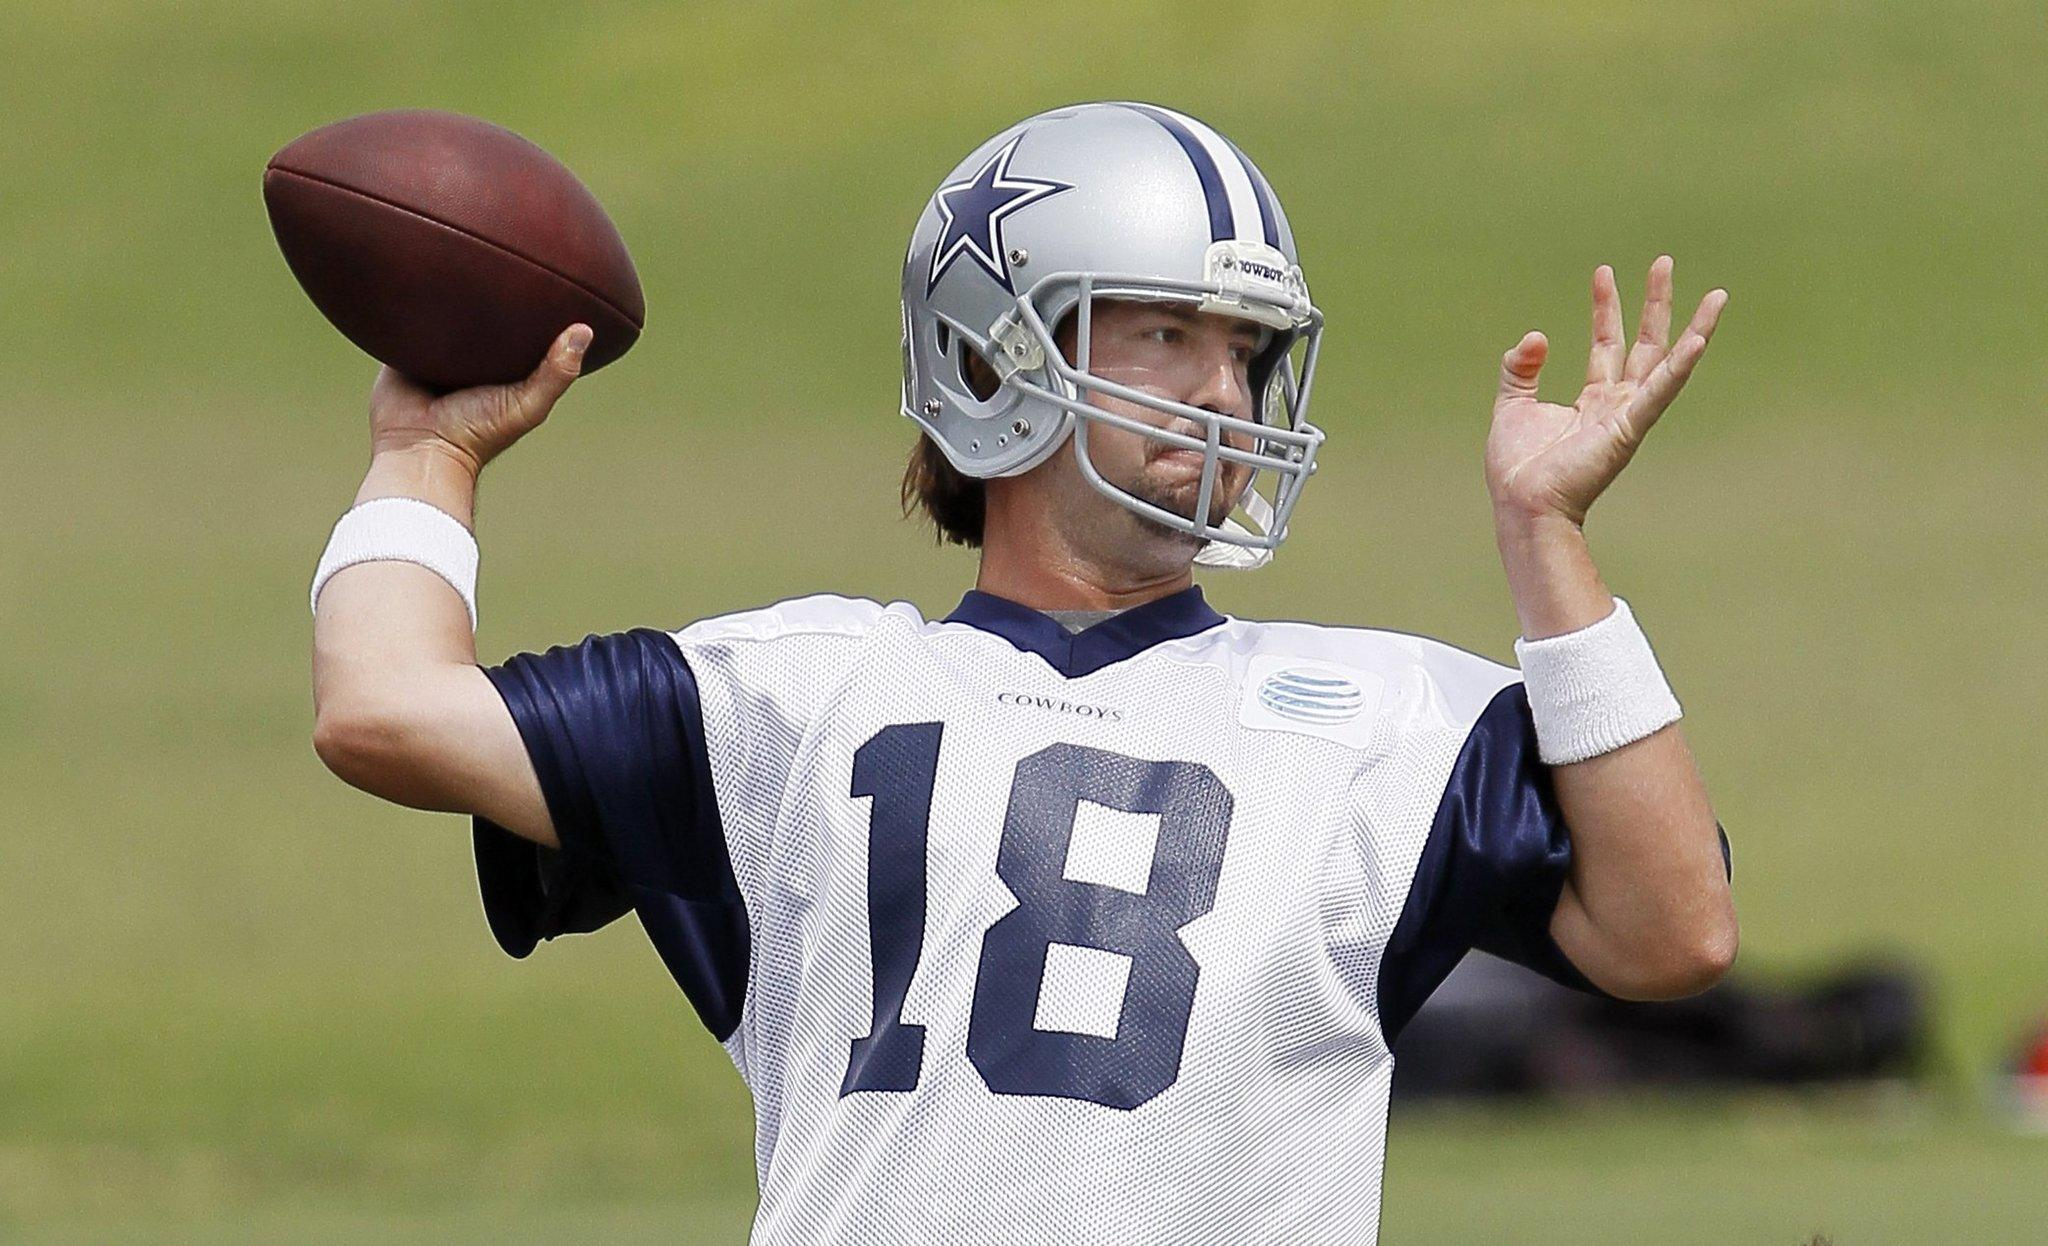 Dallas Cowboys backup quarterback Kyle Orton says he will be ready if needed Sunday.